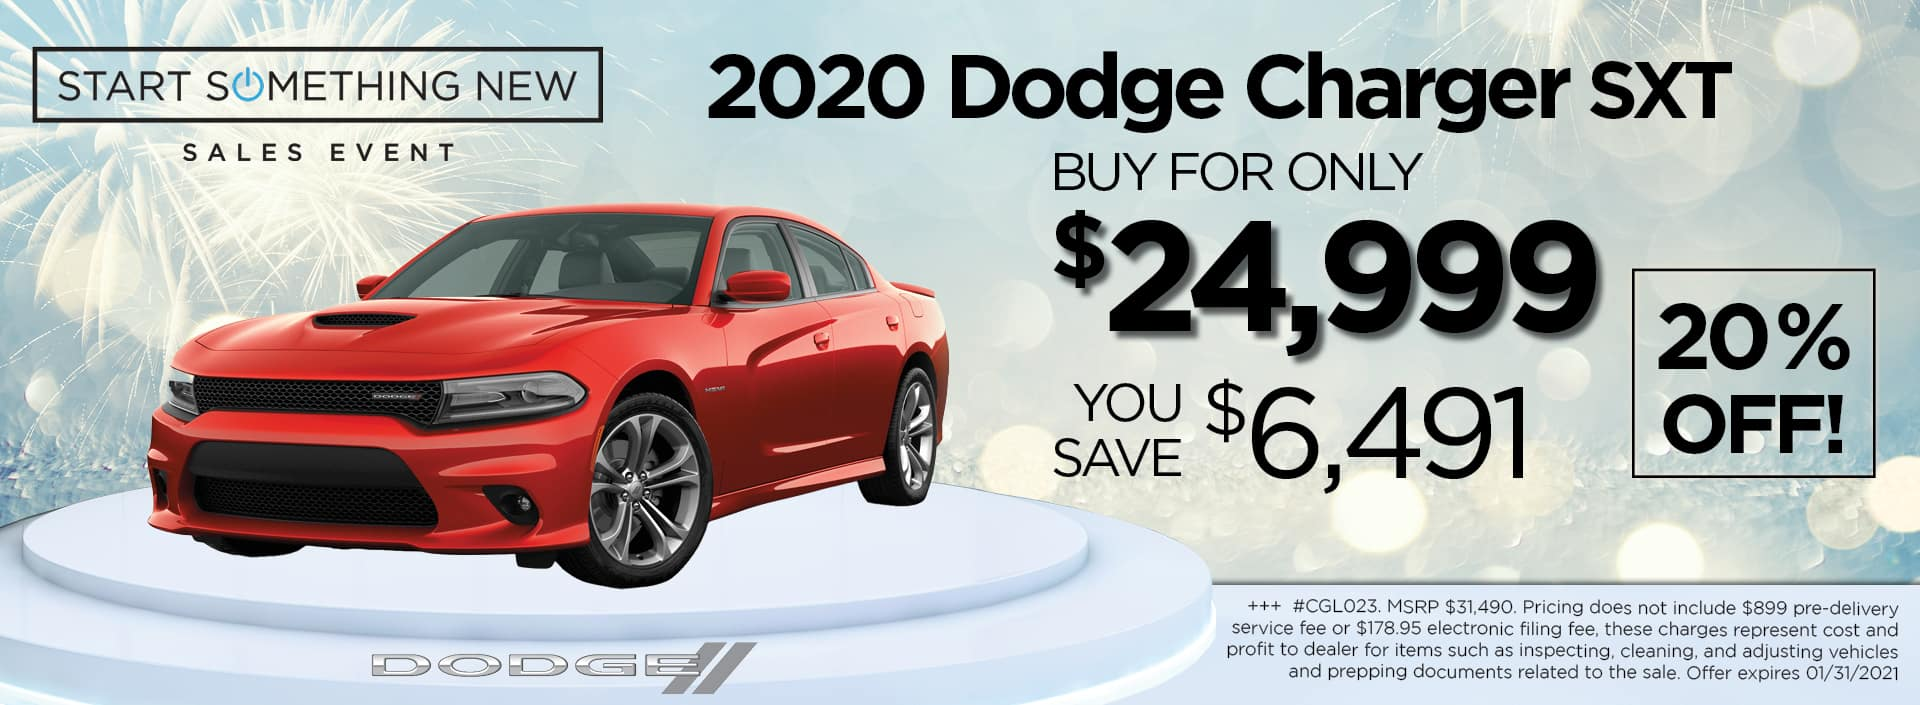 2020 Charger 24999